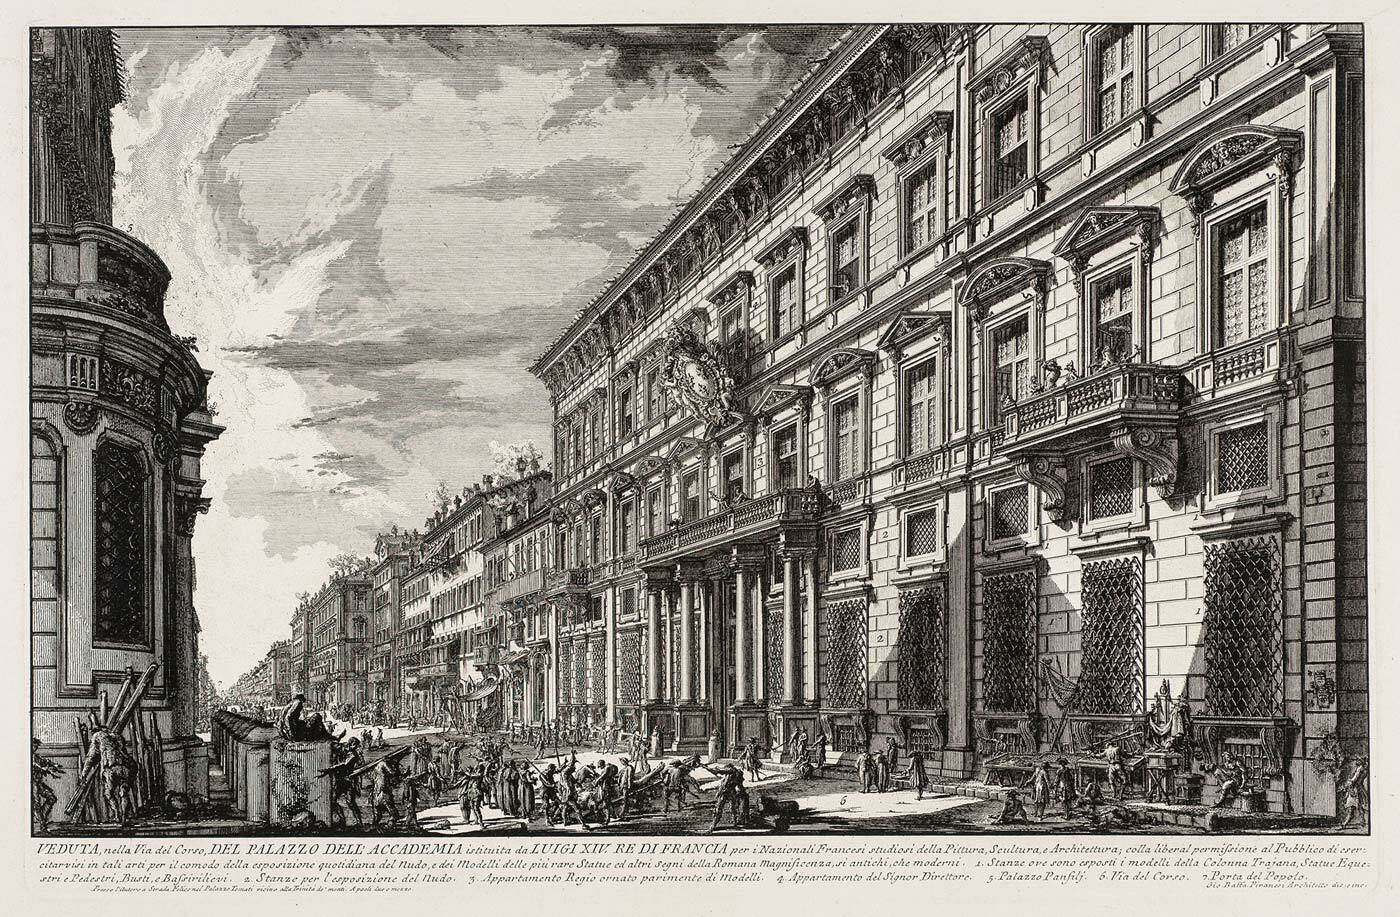 Palazzo Mancini, French Academy, Vedute di Roma by Piranesi (collection KABK Library)